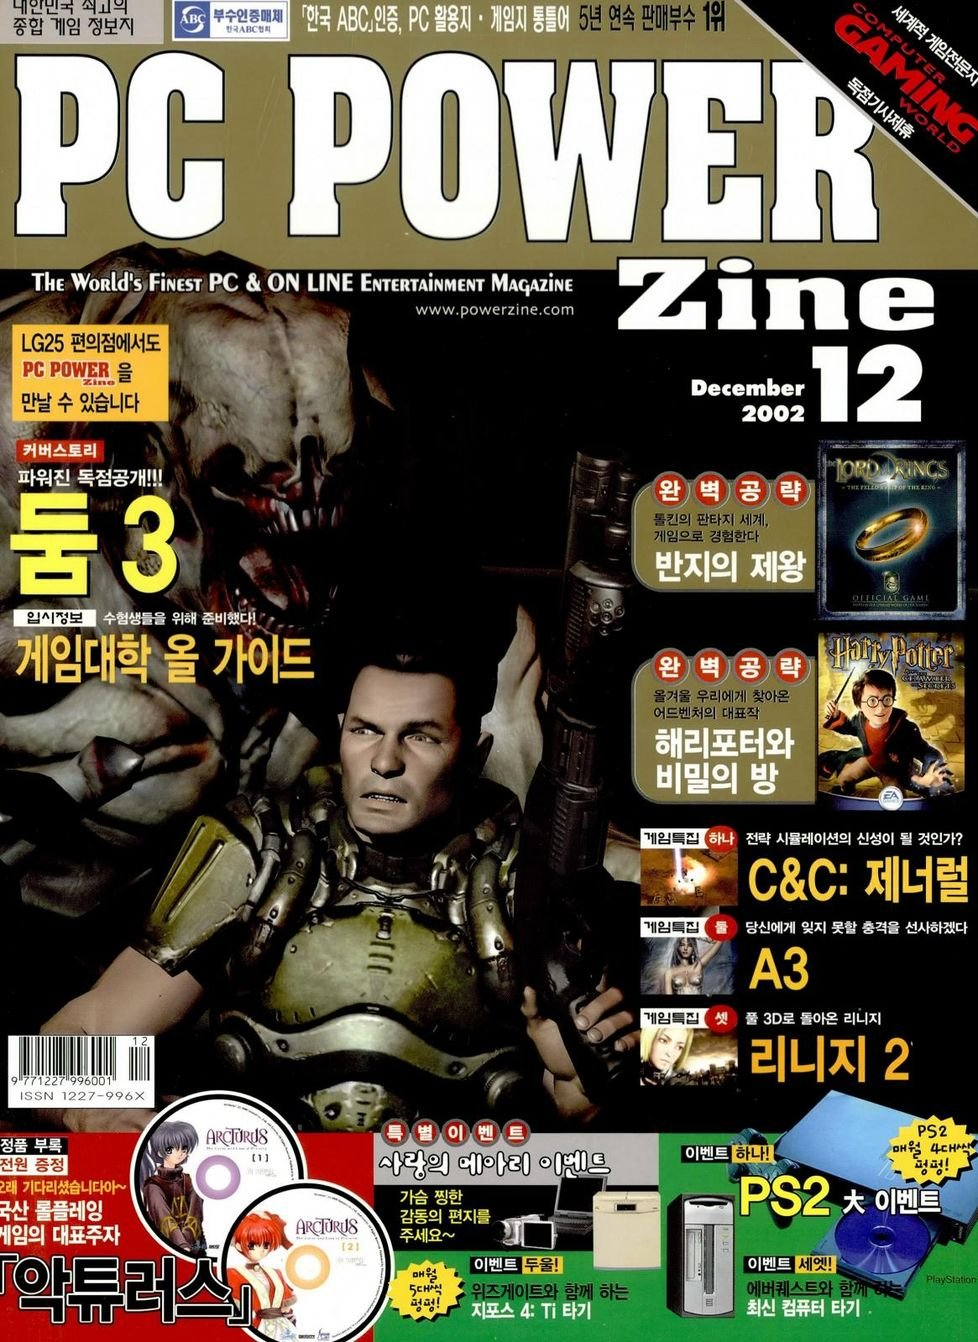 PC Power Zine Issue 089 (December 2002)